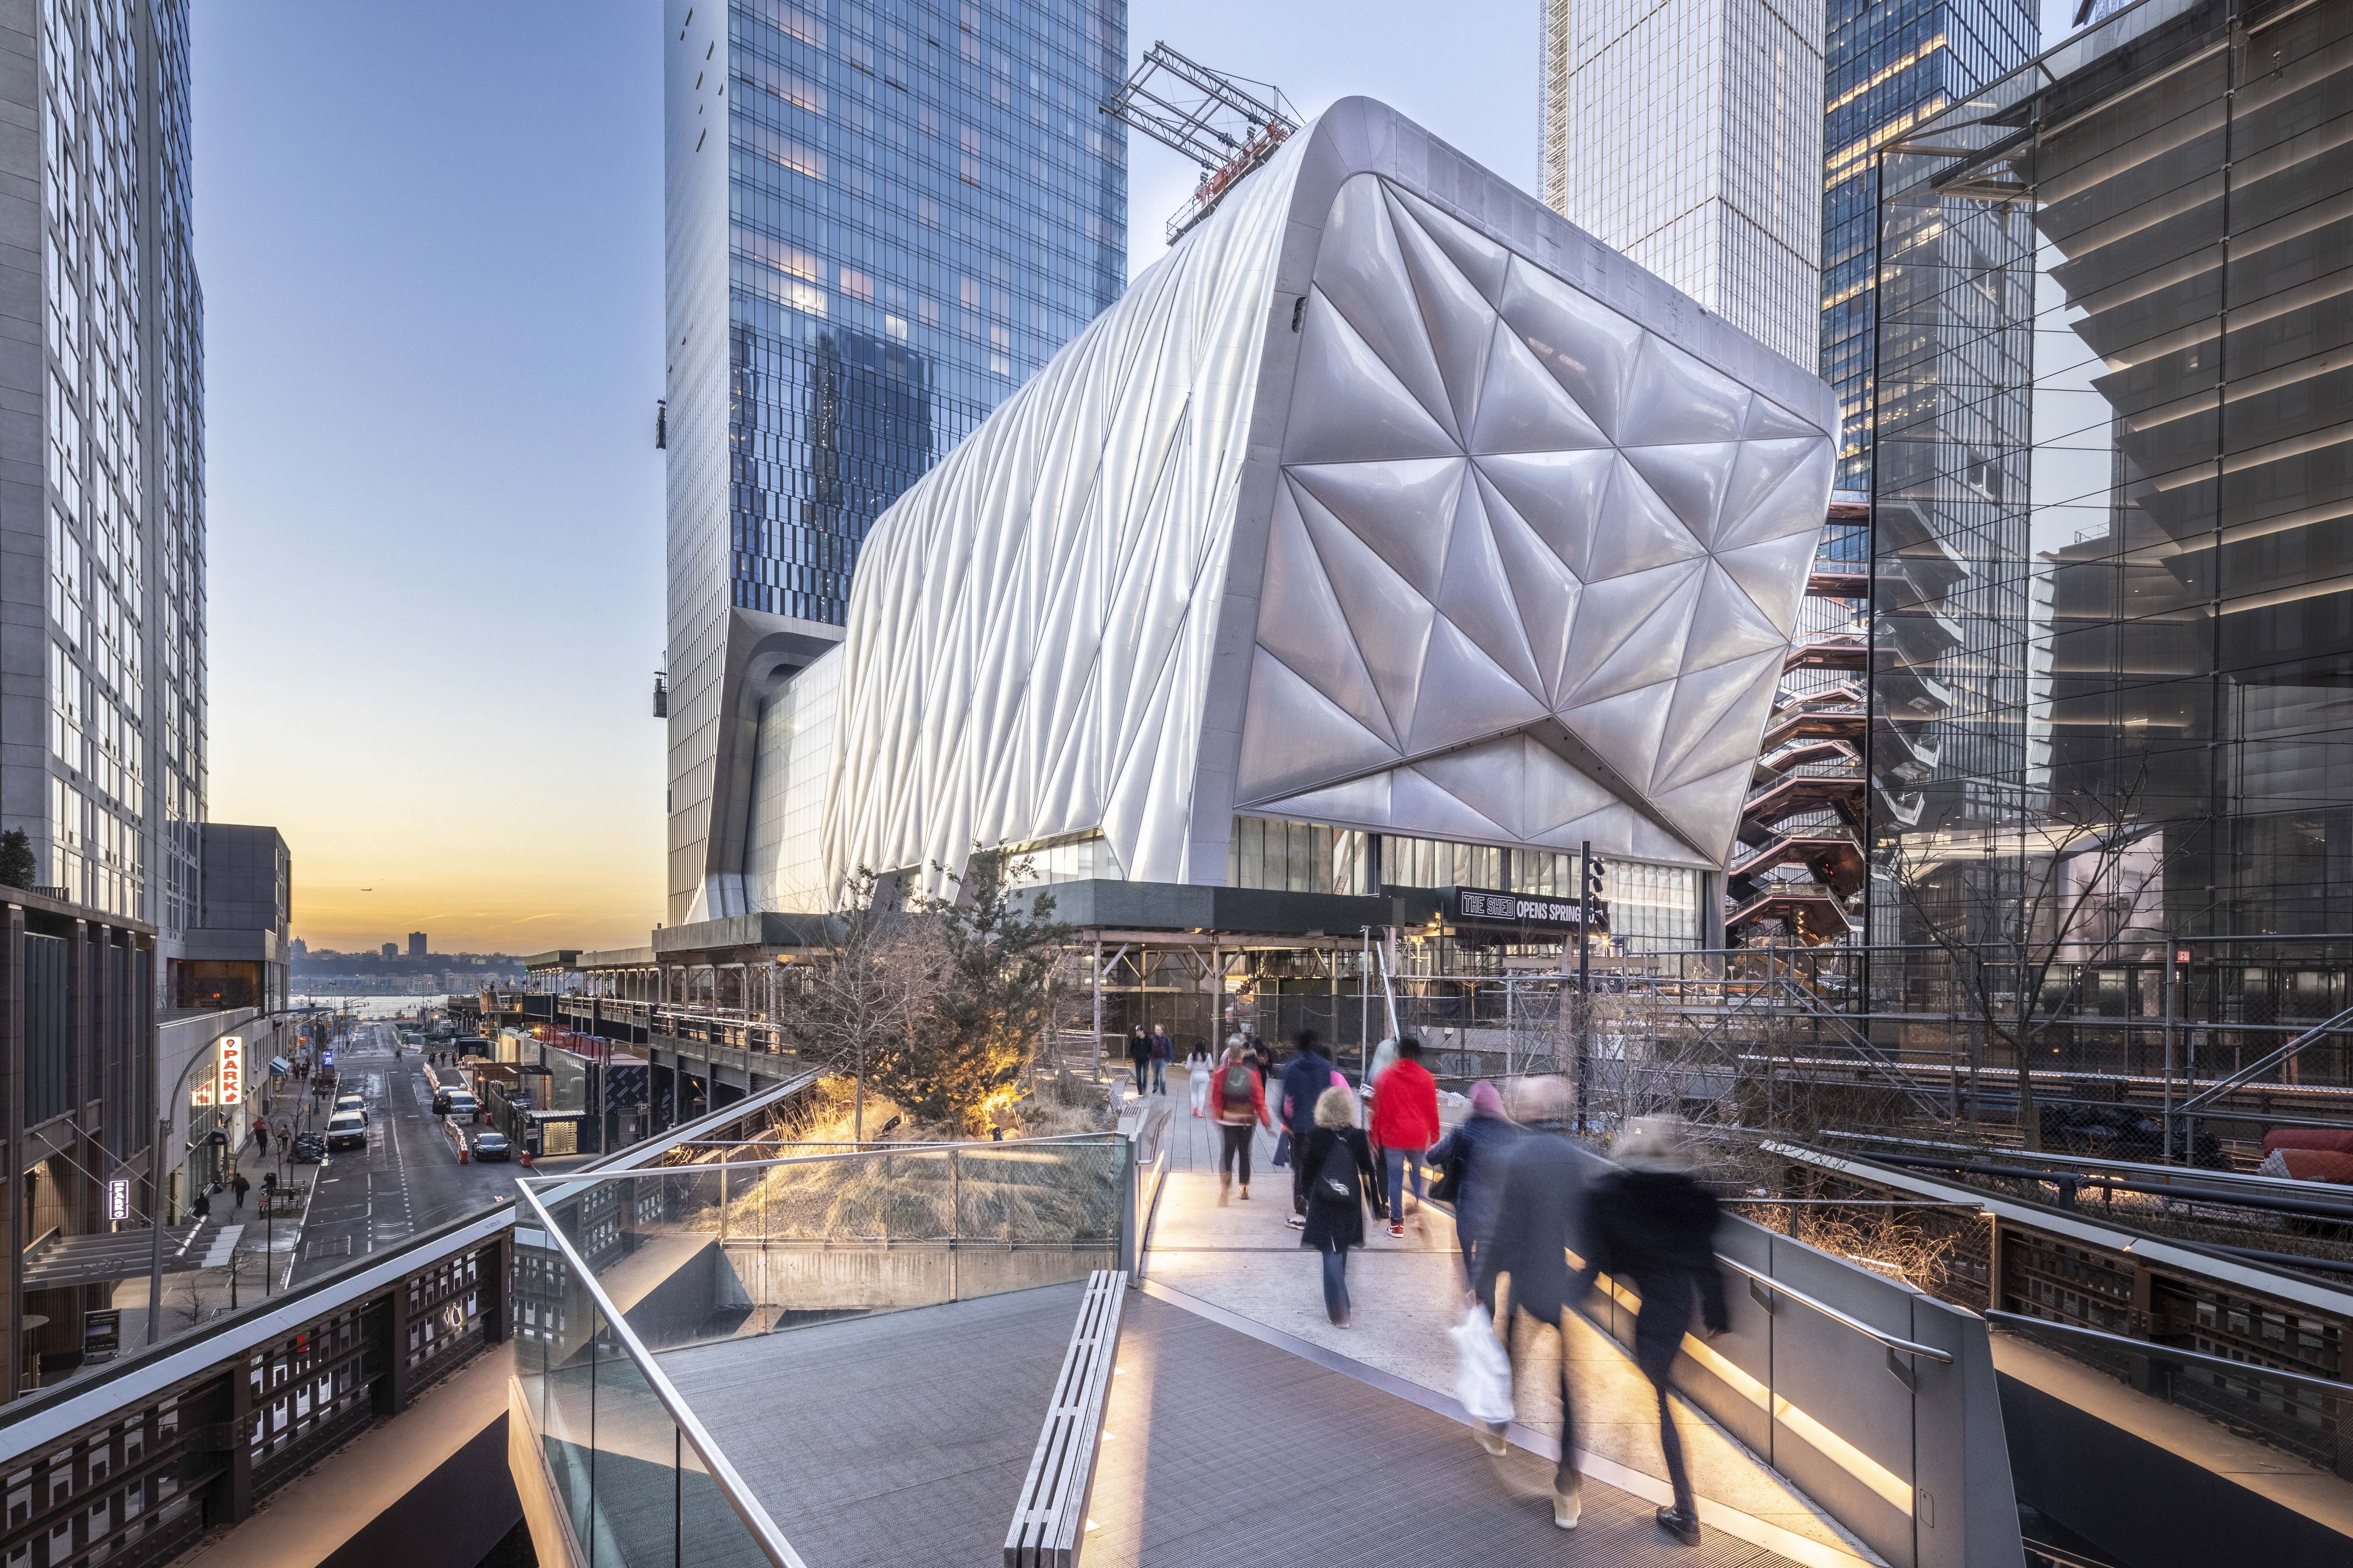 The Shed, a new arts center opening April 5 in Manhattan, is as interesting outside as in. The $475 million building was designed by Diller Scofidio + Renfro and the Rockwell Group.